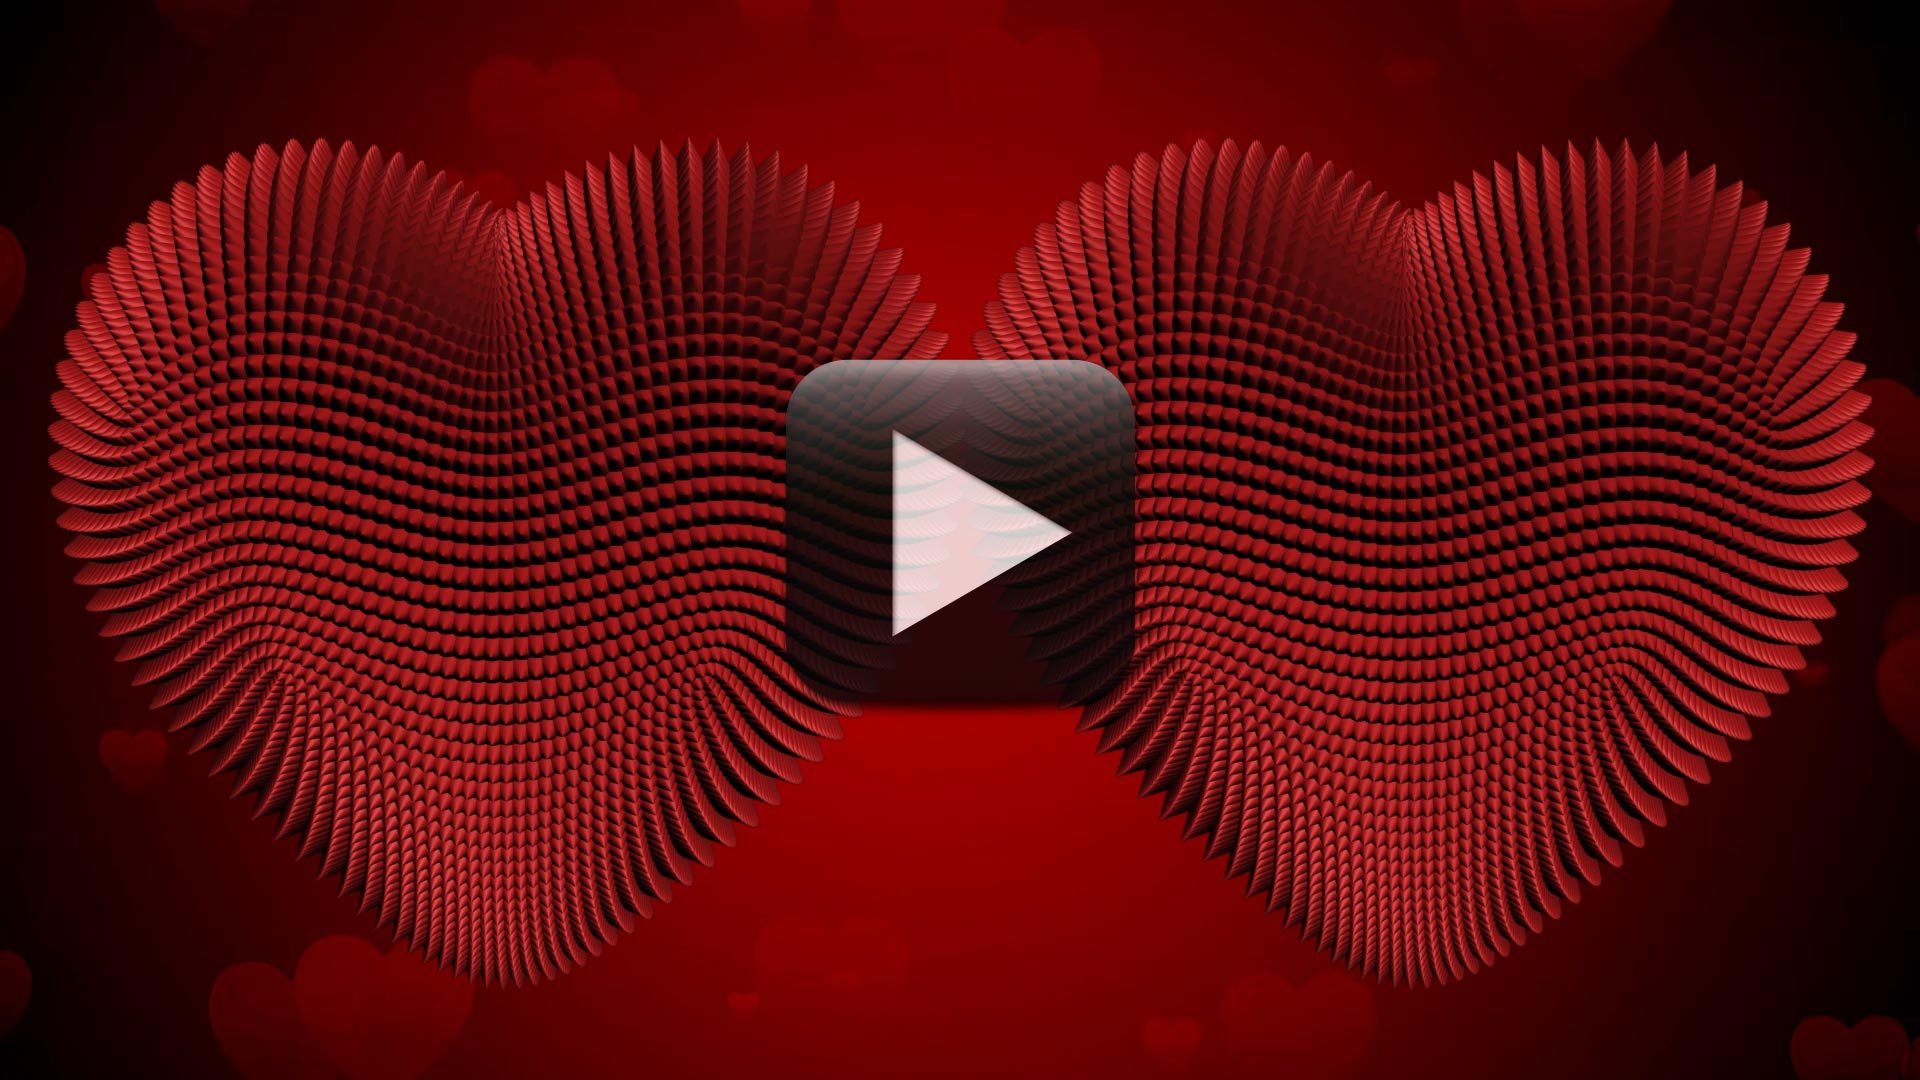 100+Free Wedding Background Video Effects In HD   All Design Creative